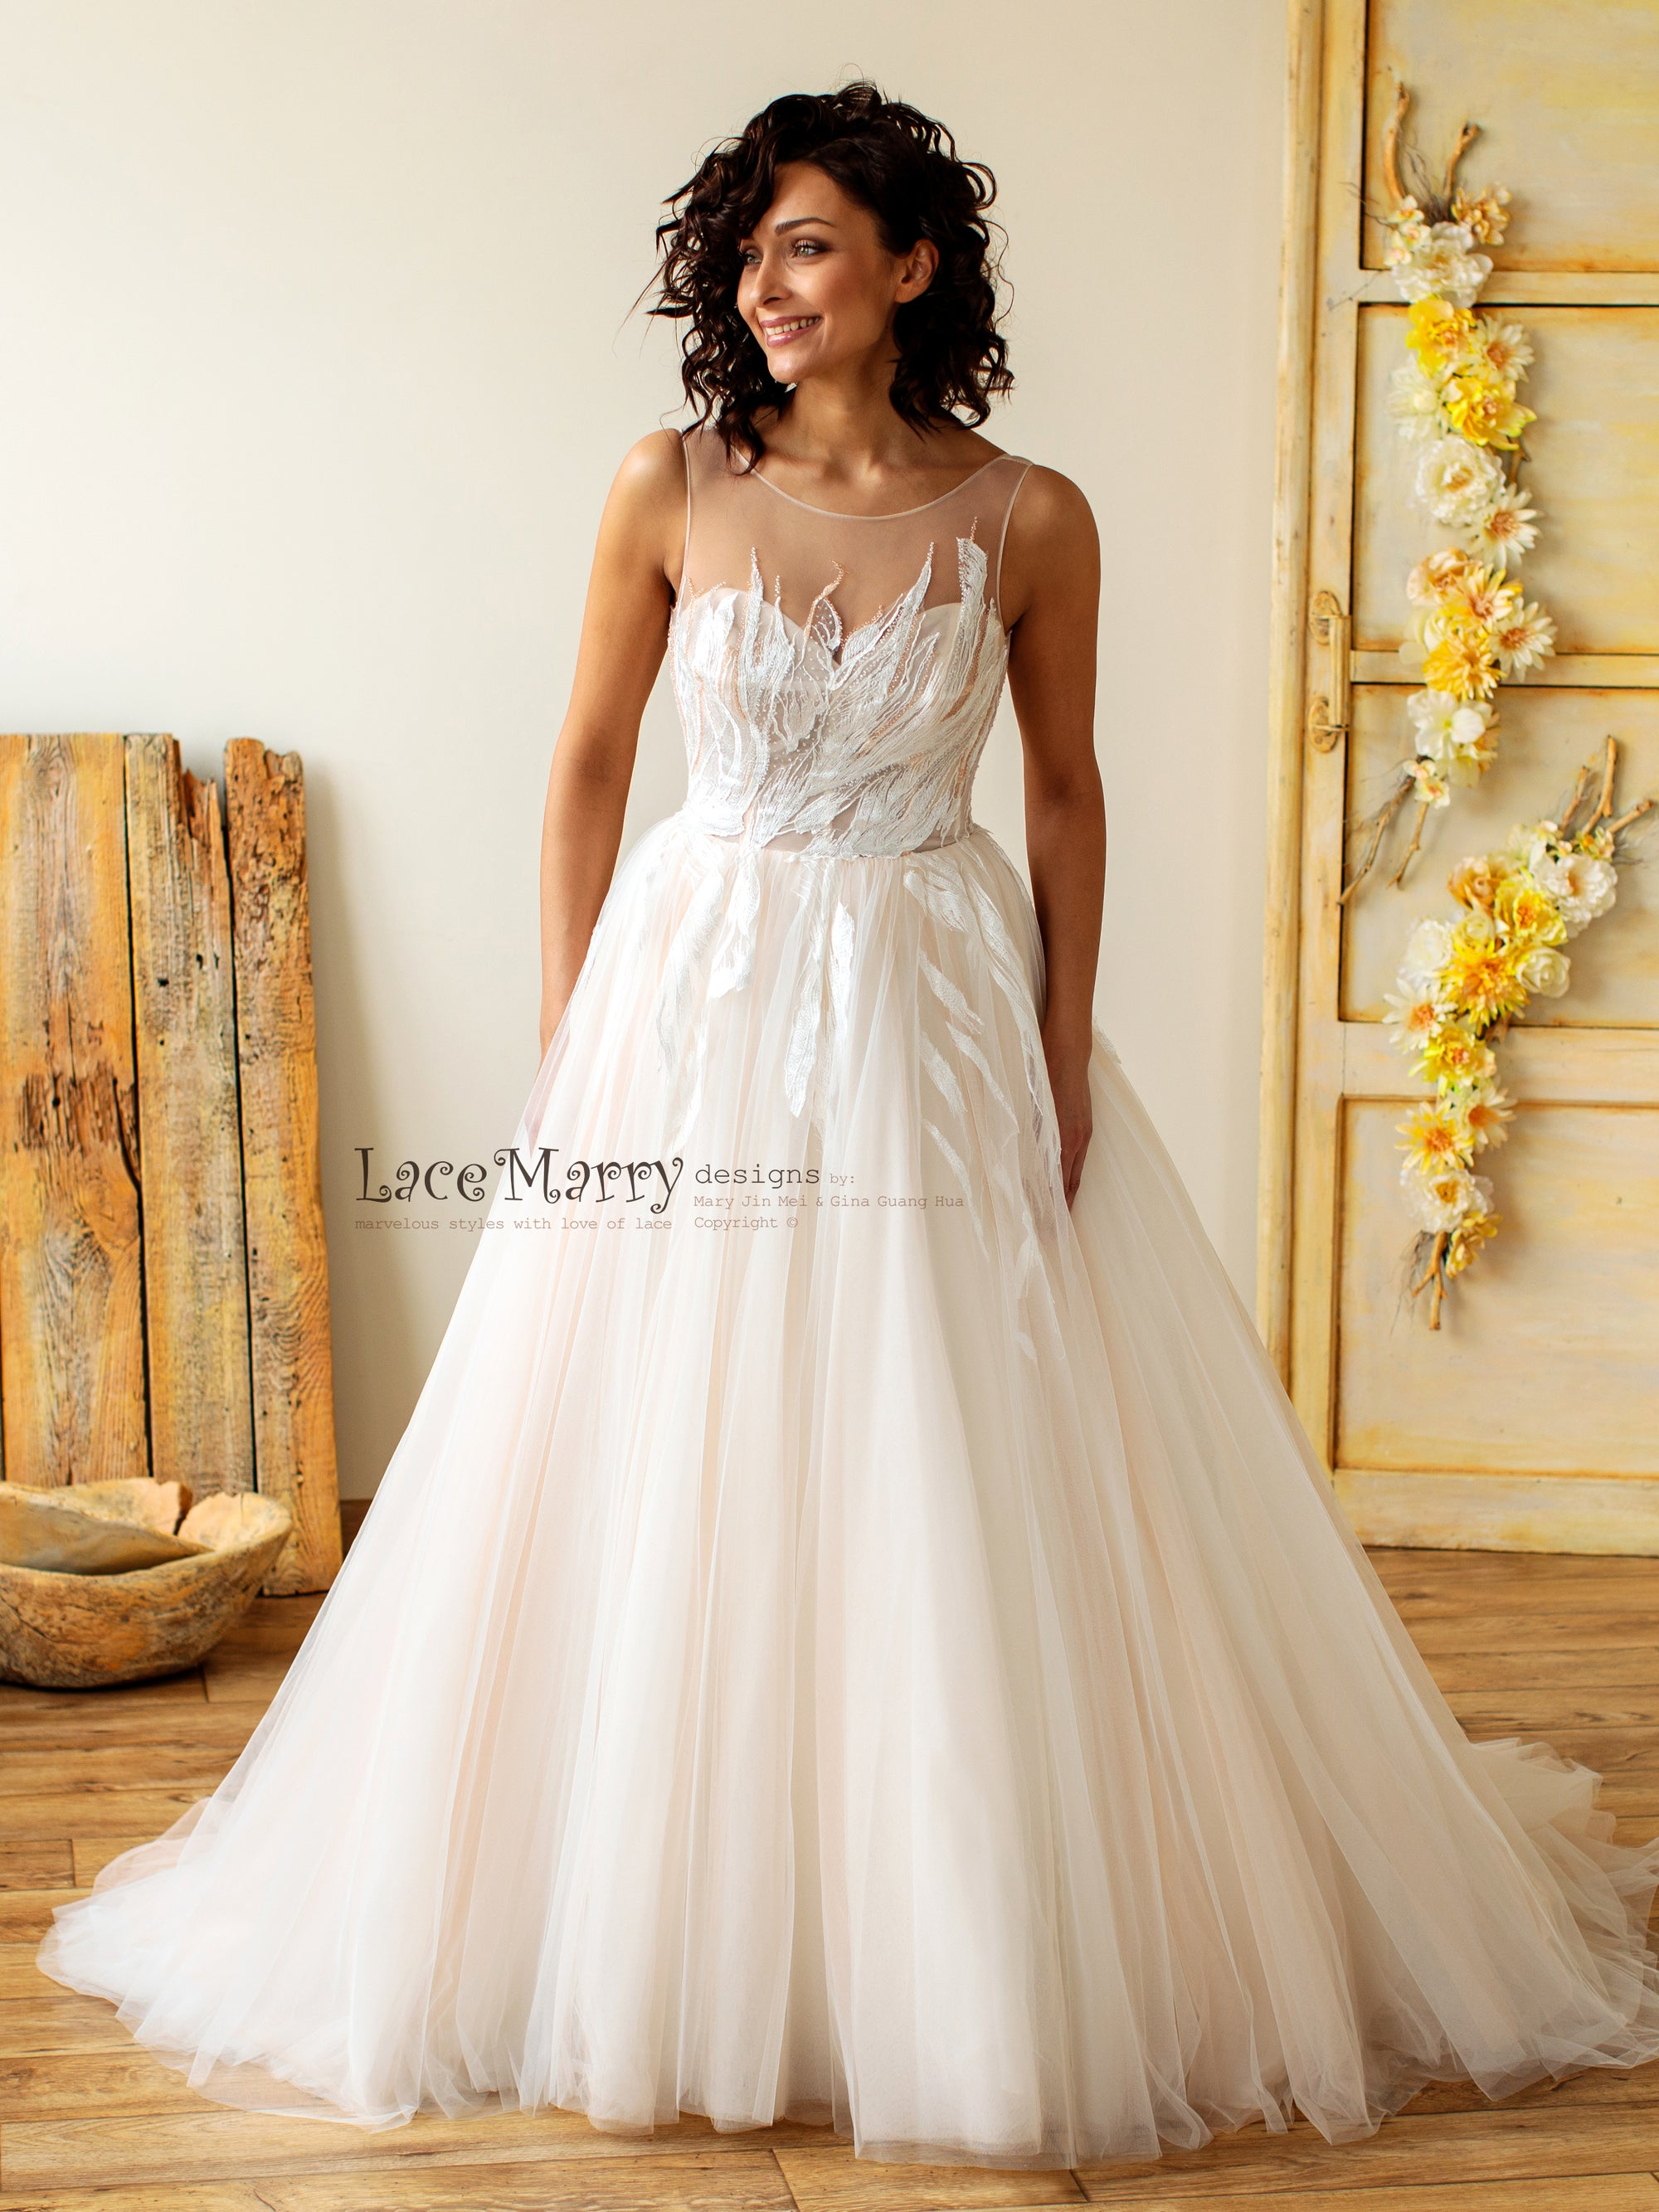 Princess Wedding Dress with Feather Appliques